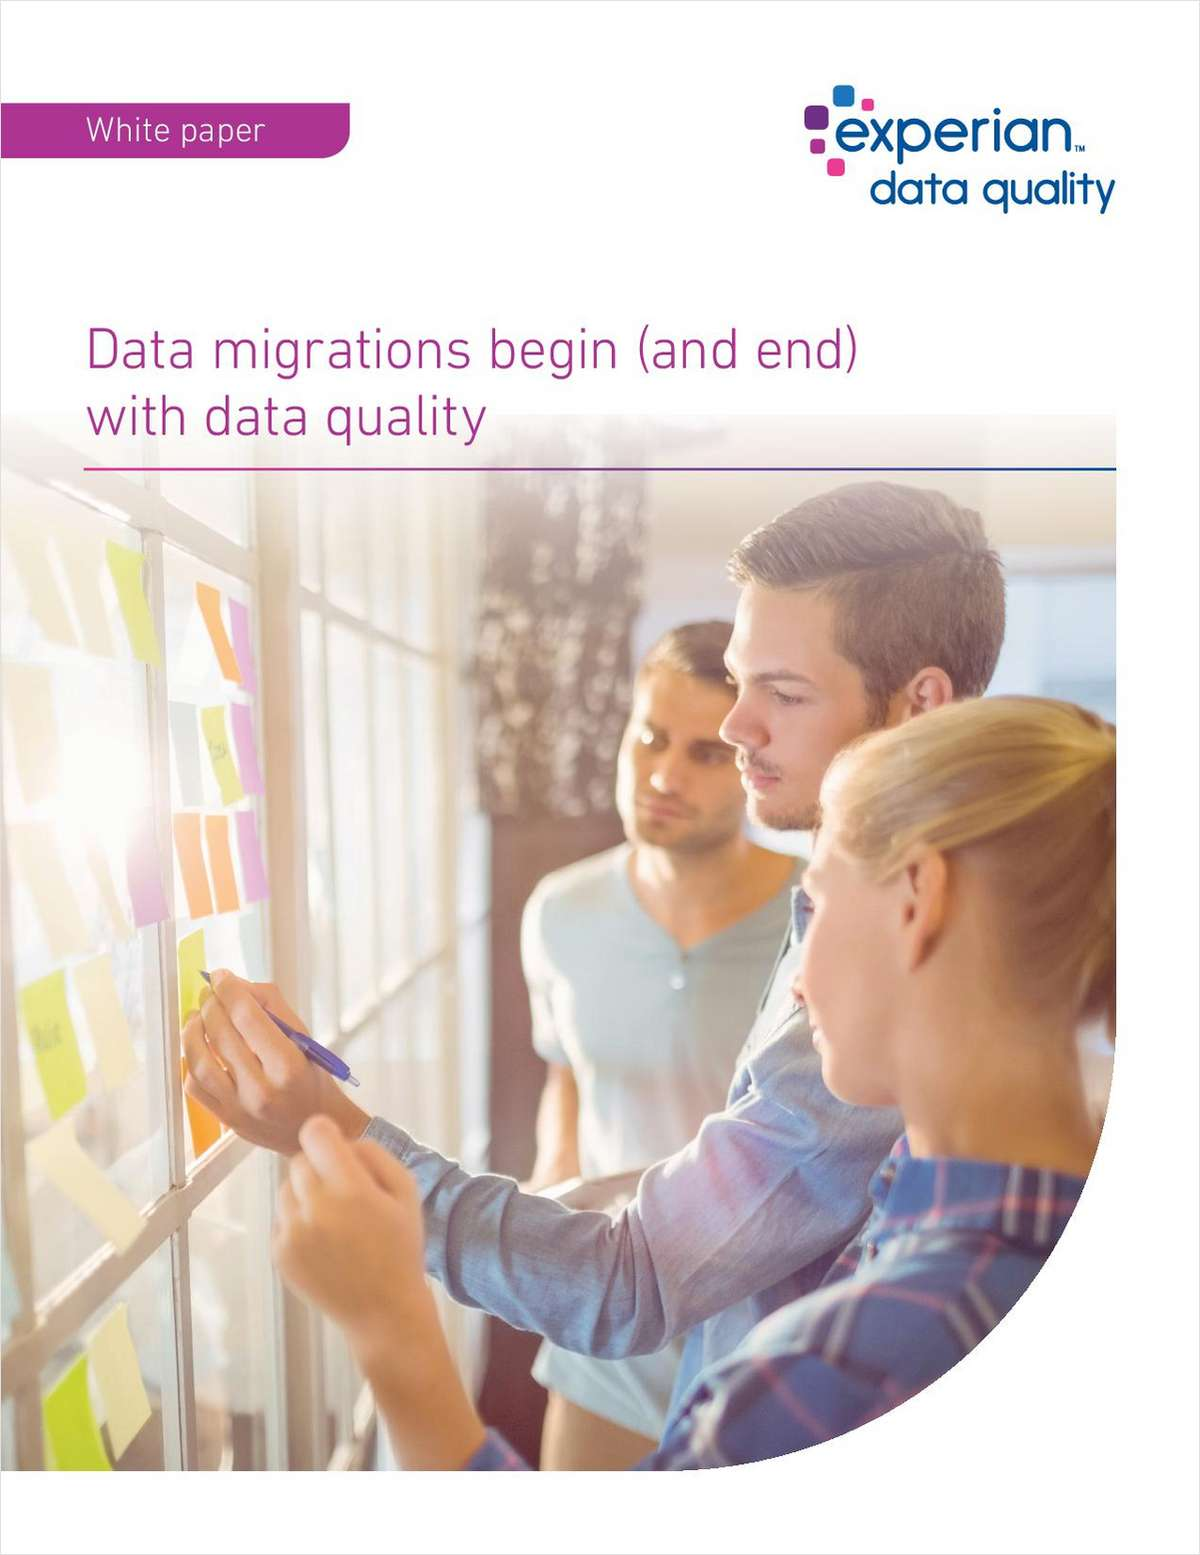 Data migrations begin (and end) with data quality